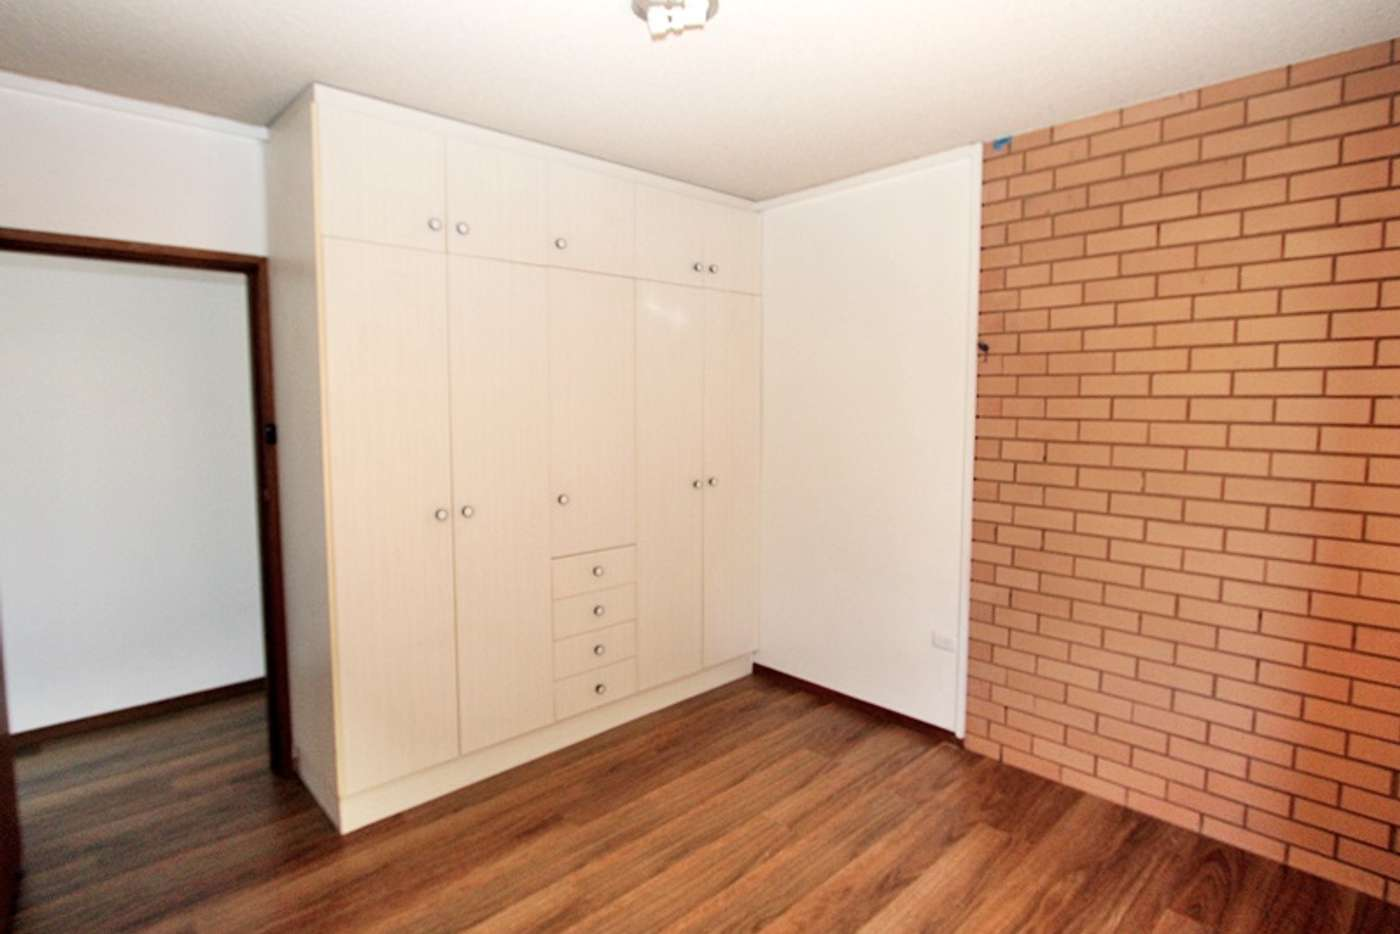 Seventh view of Homely unit listing, 5/191 Tarcutta Street, Wagga Wagga NSW 2650